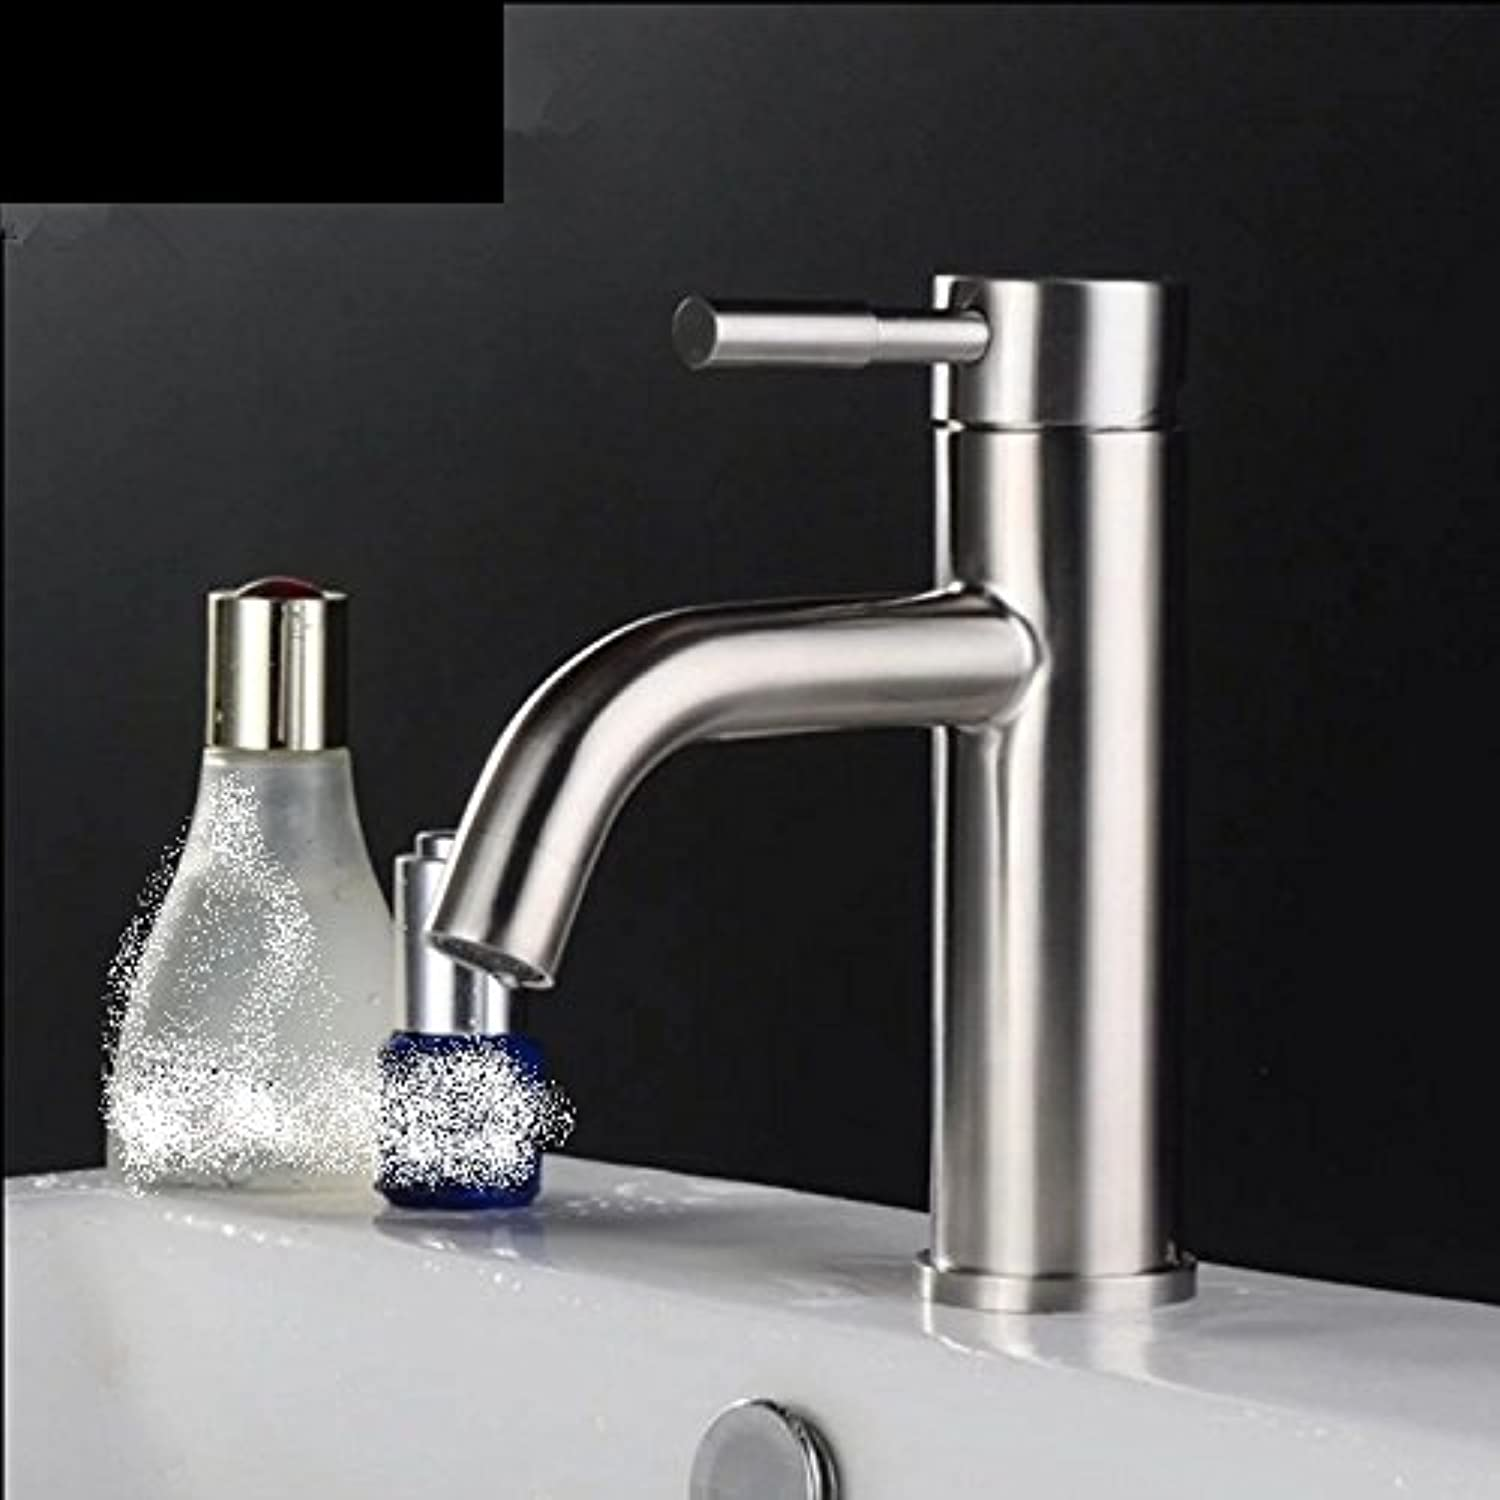 LHbox Basin Mixer Tap Bathroom Sink Faucet 304 Stainless Steel Basin Faucet